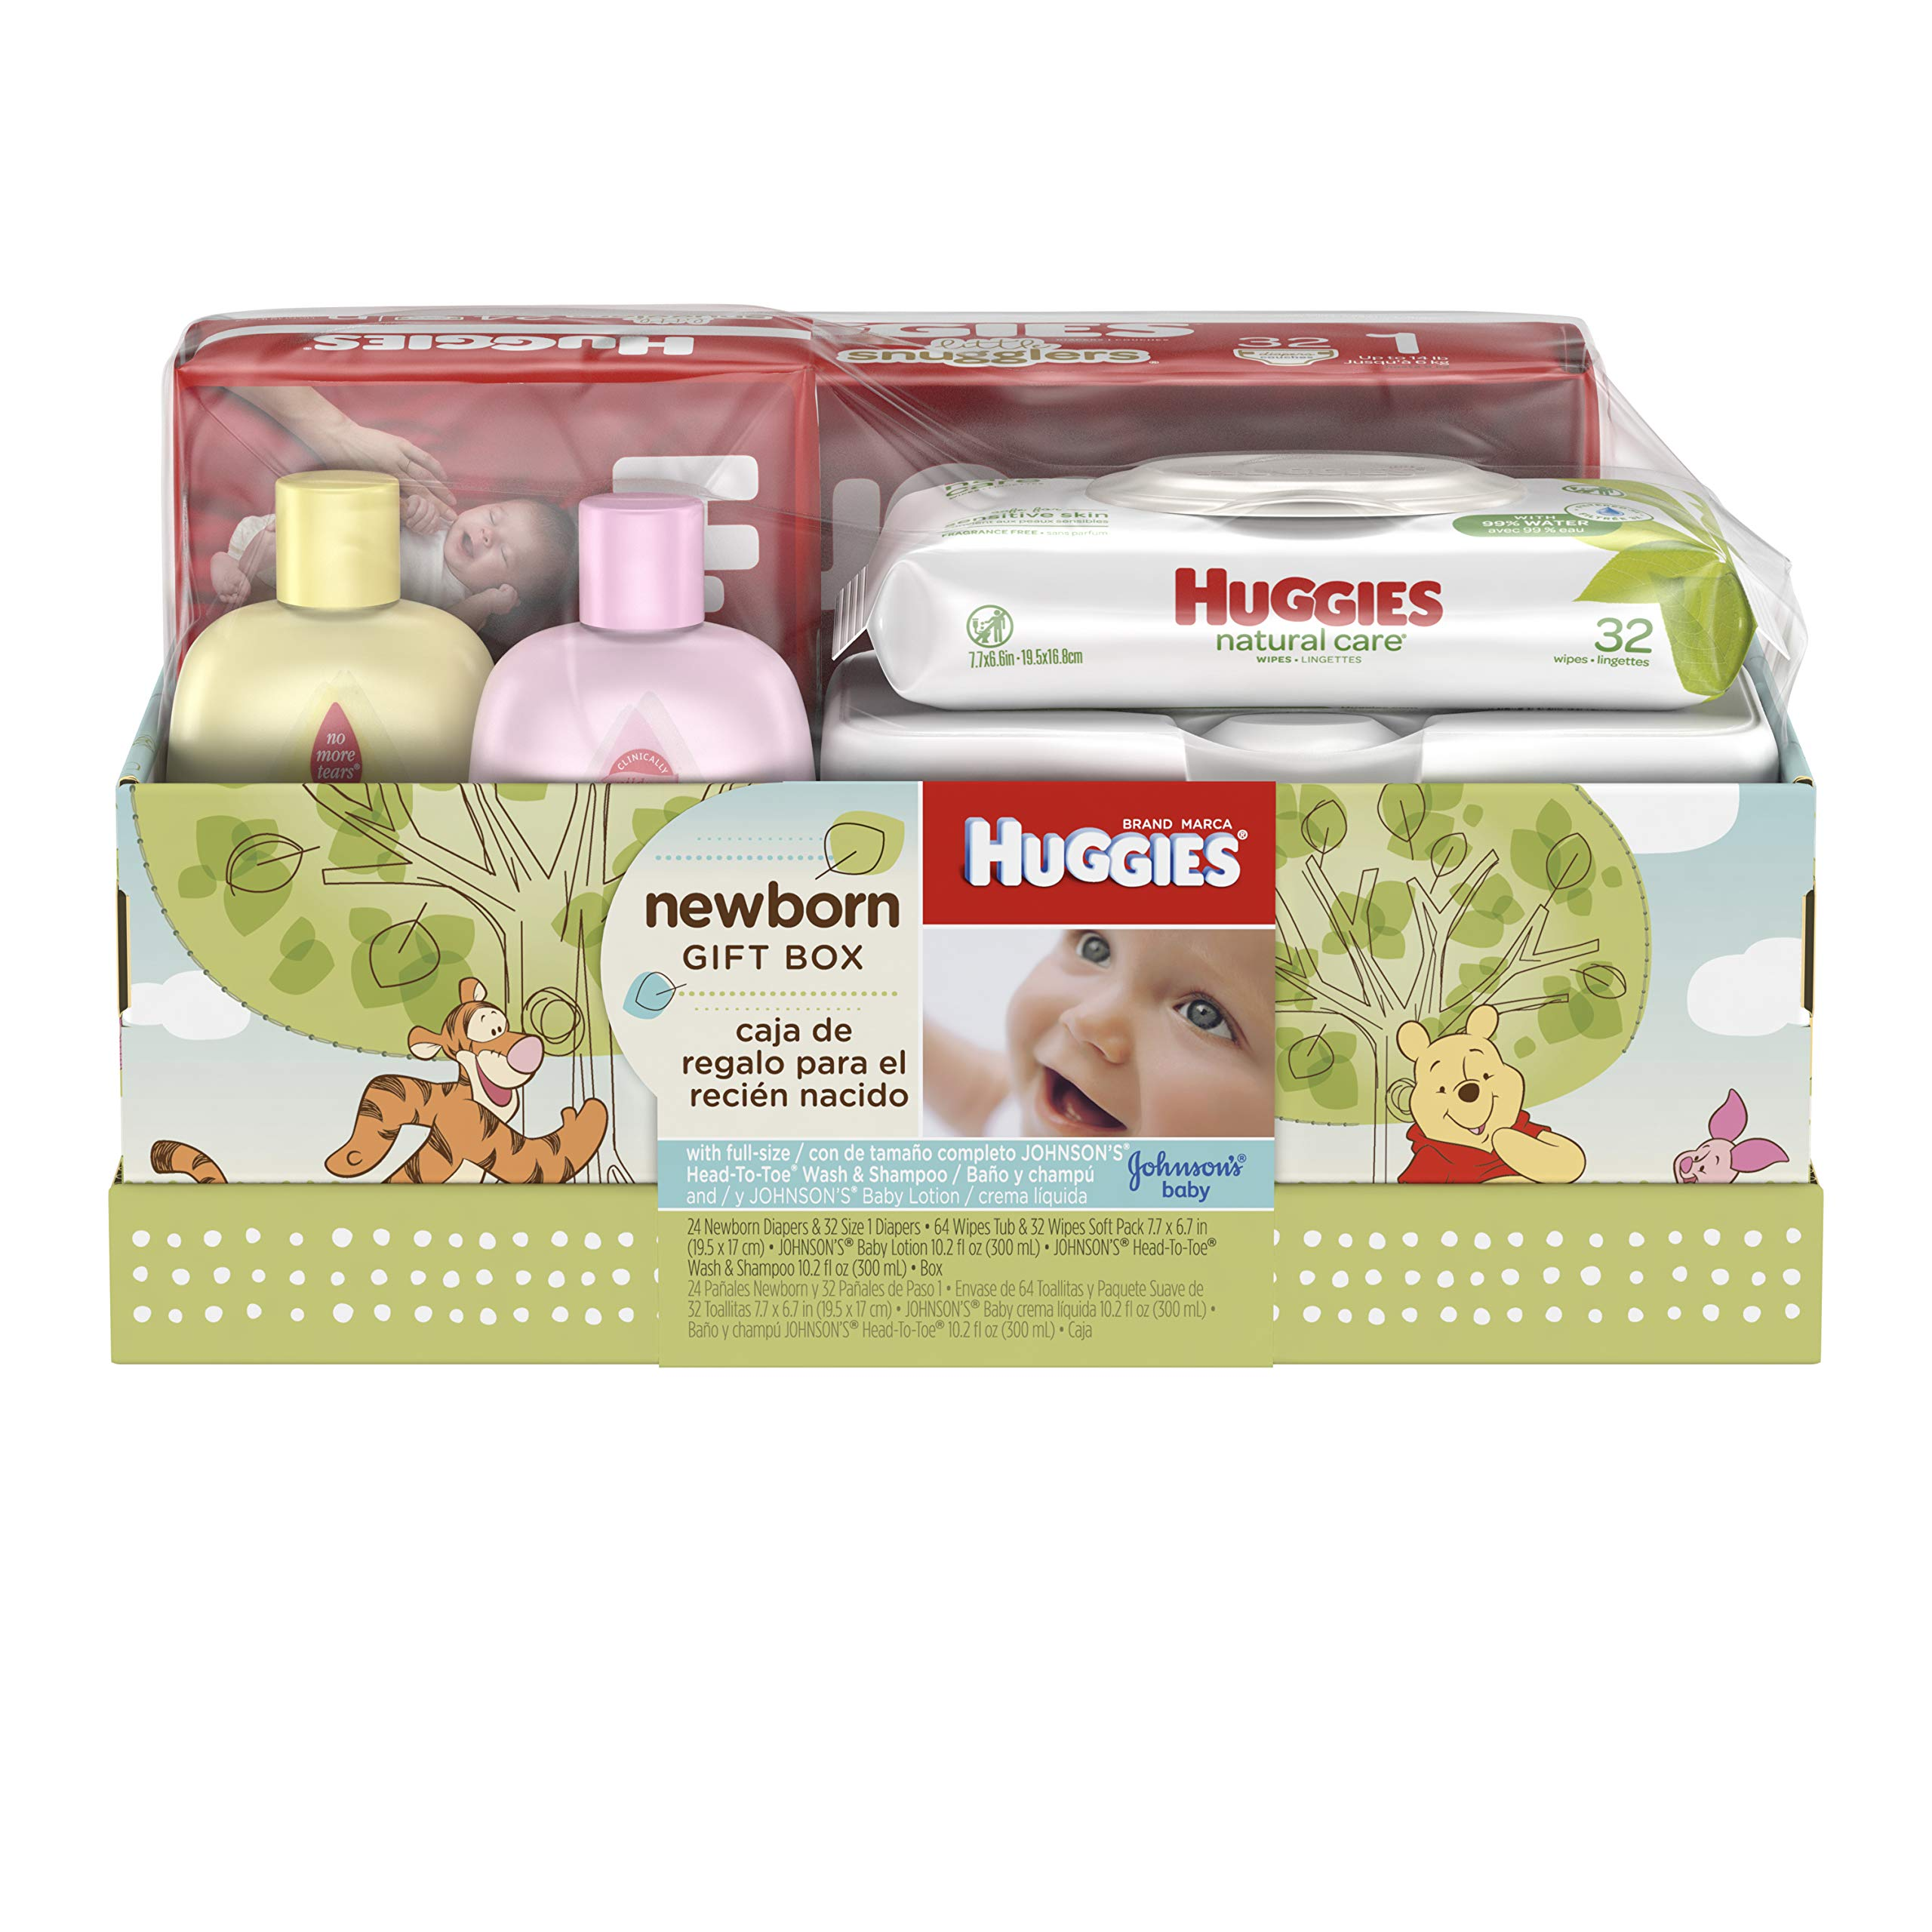 Huggies Newborn Gift Box - Little Snugglers Diapers (Size Newborn 24 Ct & Size 1 32 Ct), Natural Care Unscented Baby Wipes (96 Ct Total), and Johnson's Shampoo & Baby Lotion (Packaging May Vary) by HUGGIES